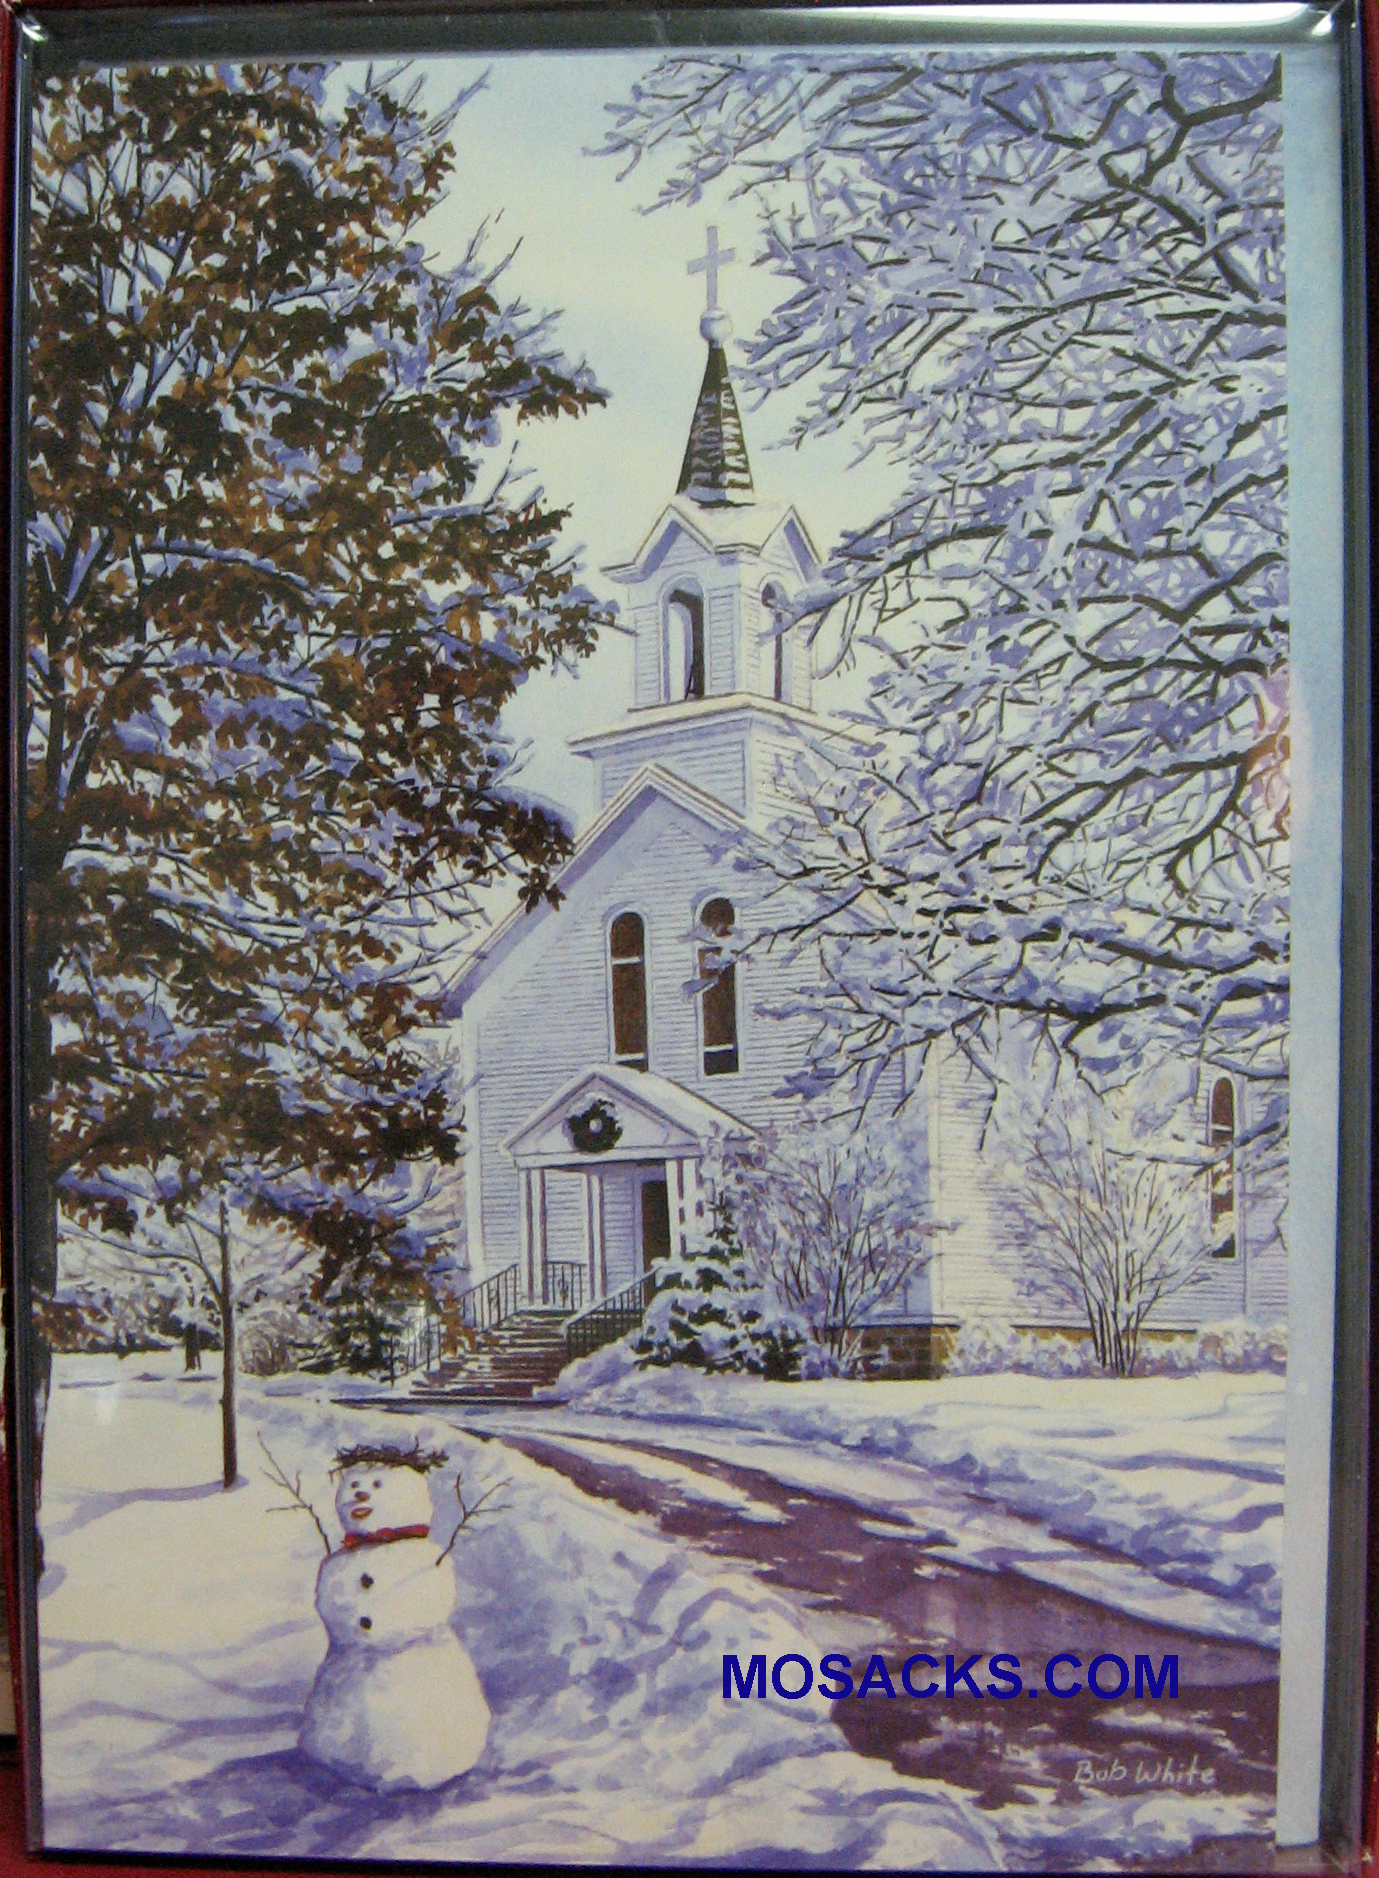 Boxed Christmas Cards Snowy Church Scene with Snowman Boxed Cards-C72120